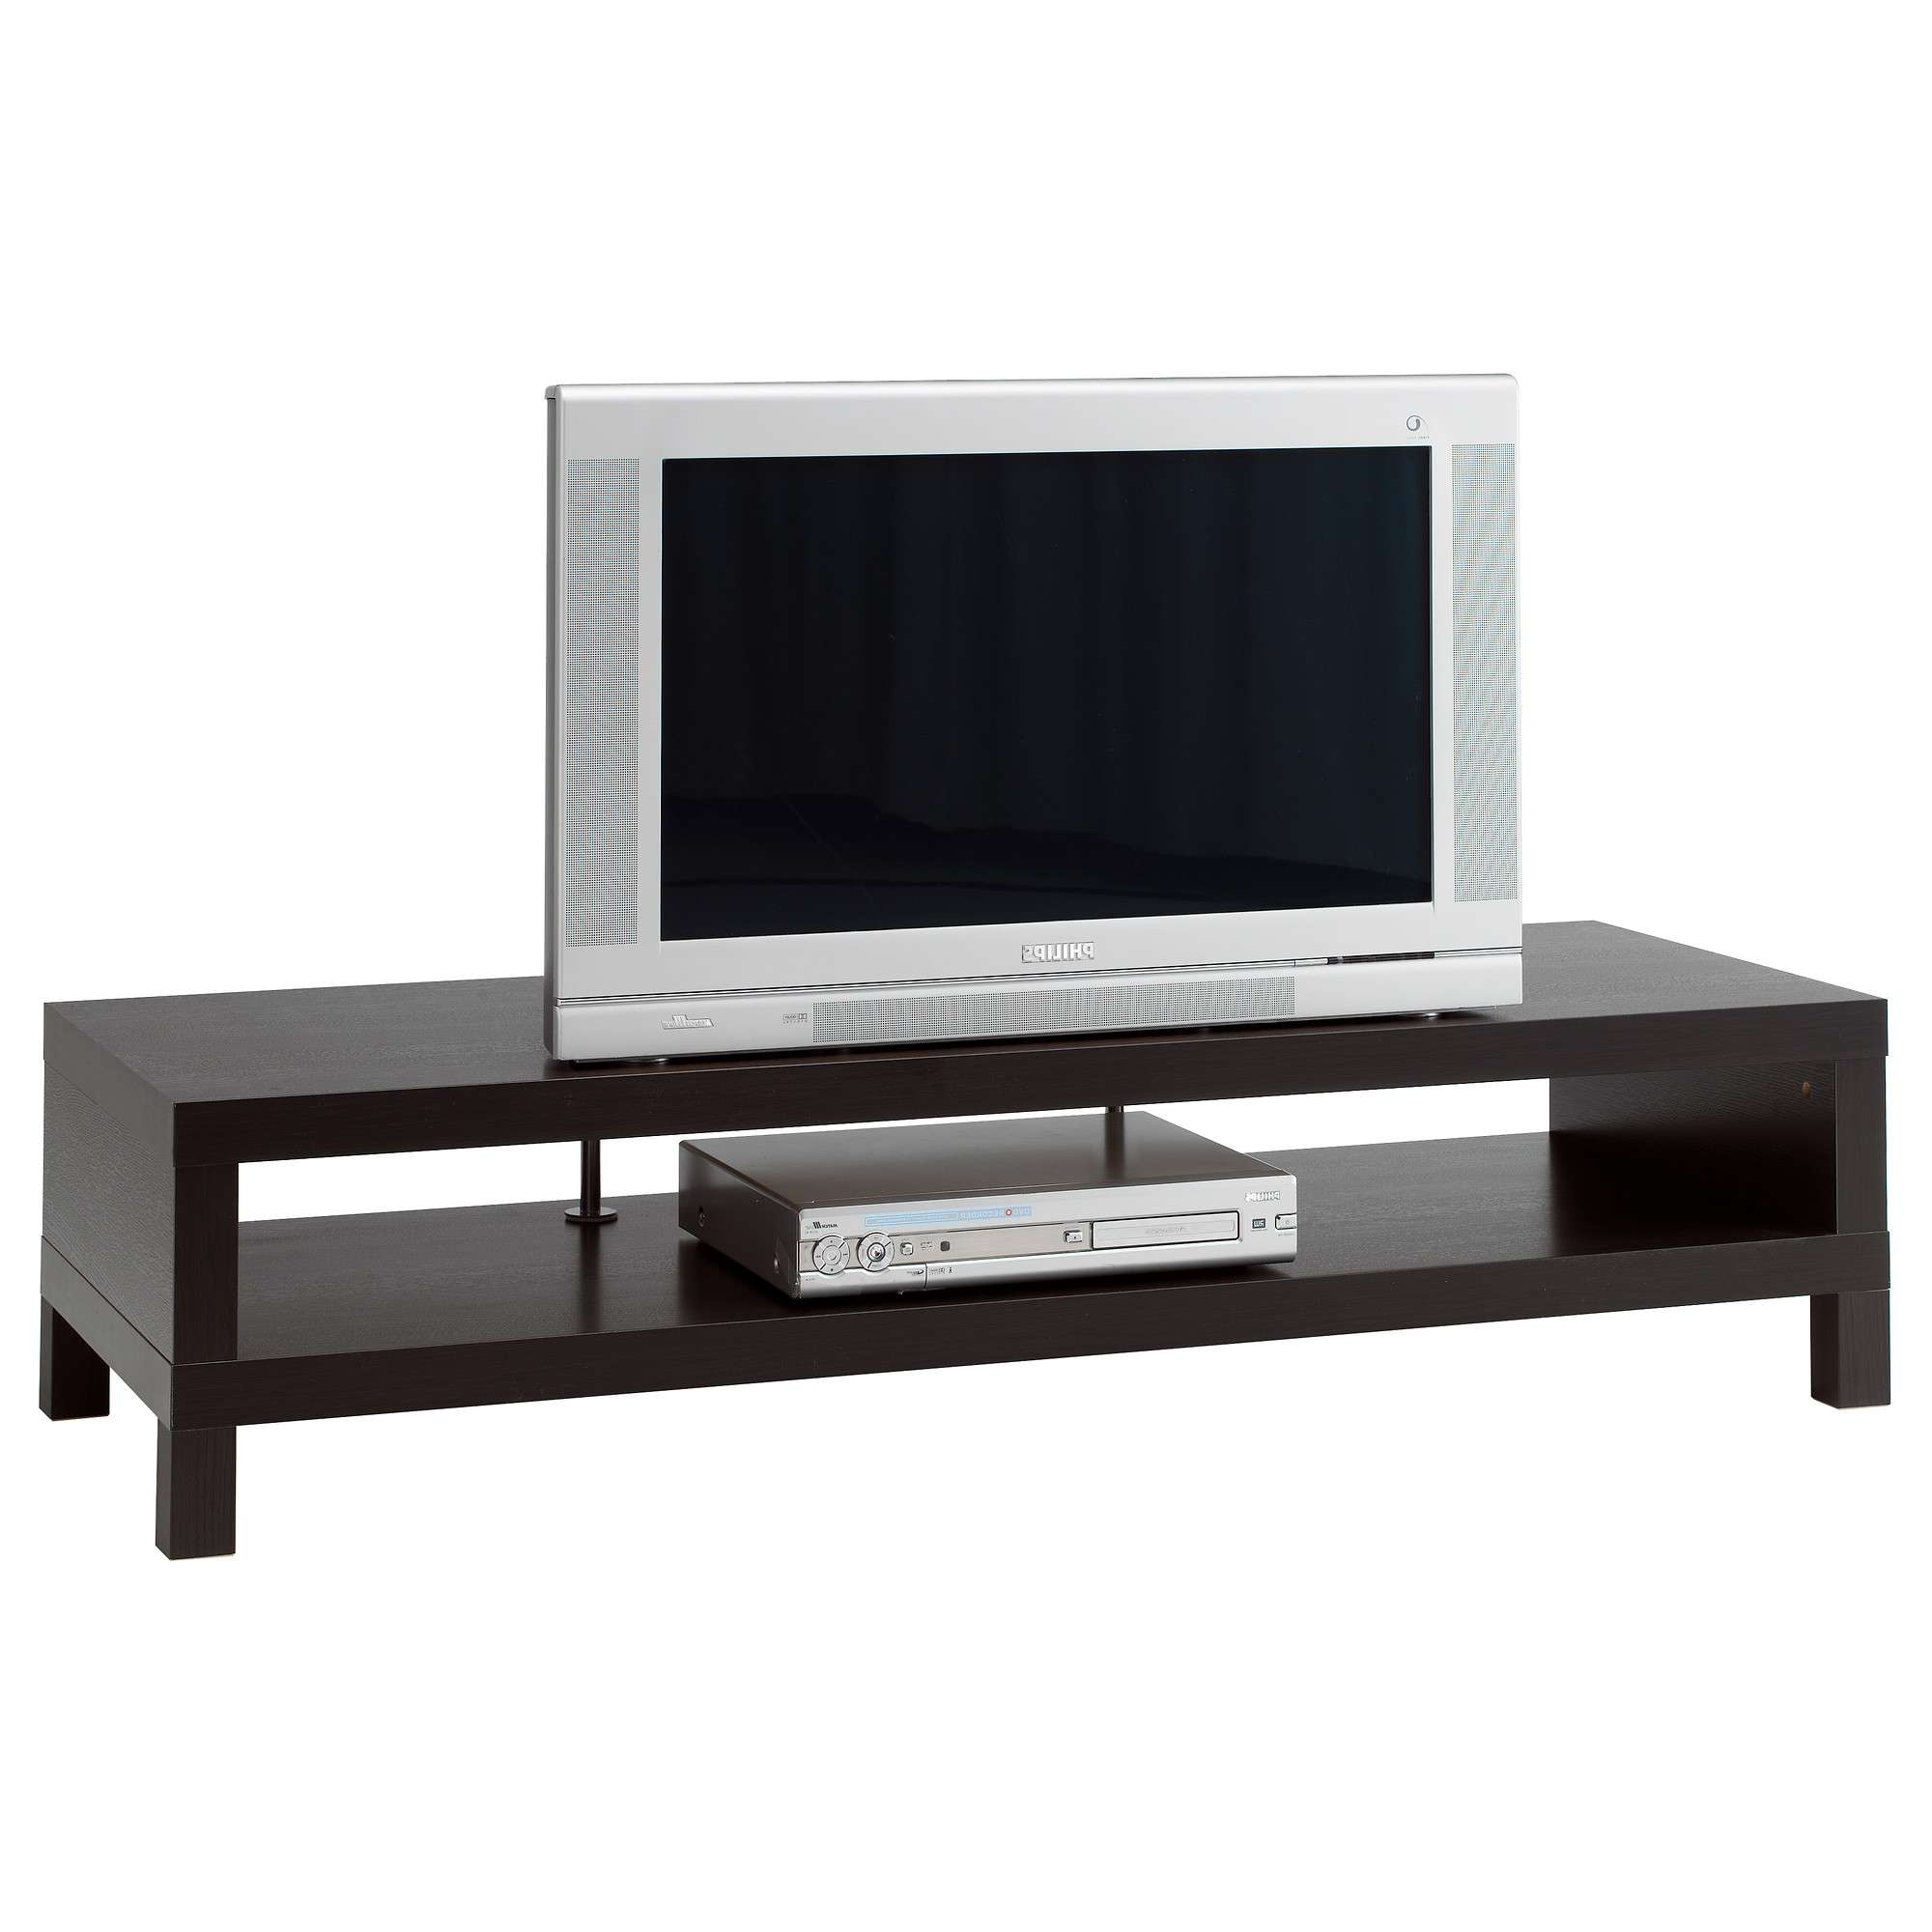 Lack Tv Bench Black Brown 149X55 Cm – Ikea Intended For Bench Tv Stands (View 9 of 15)